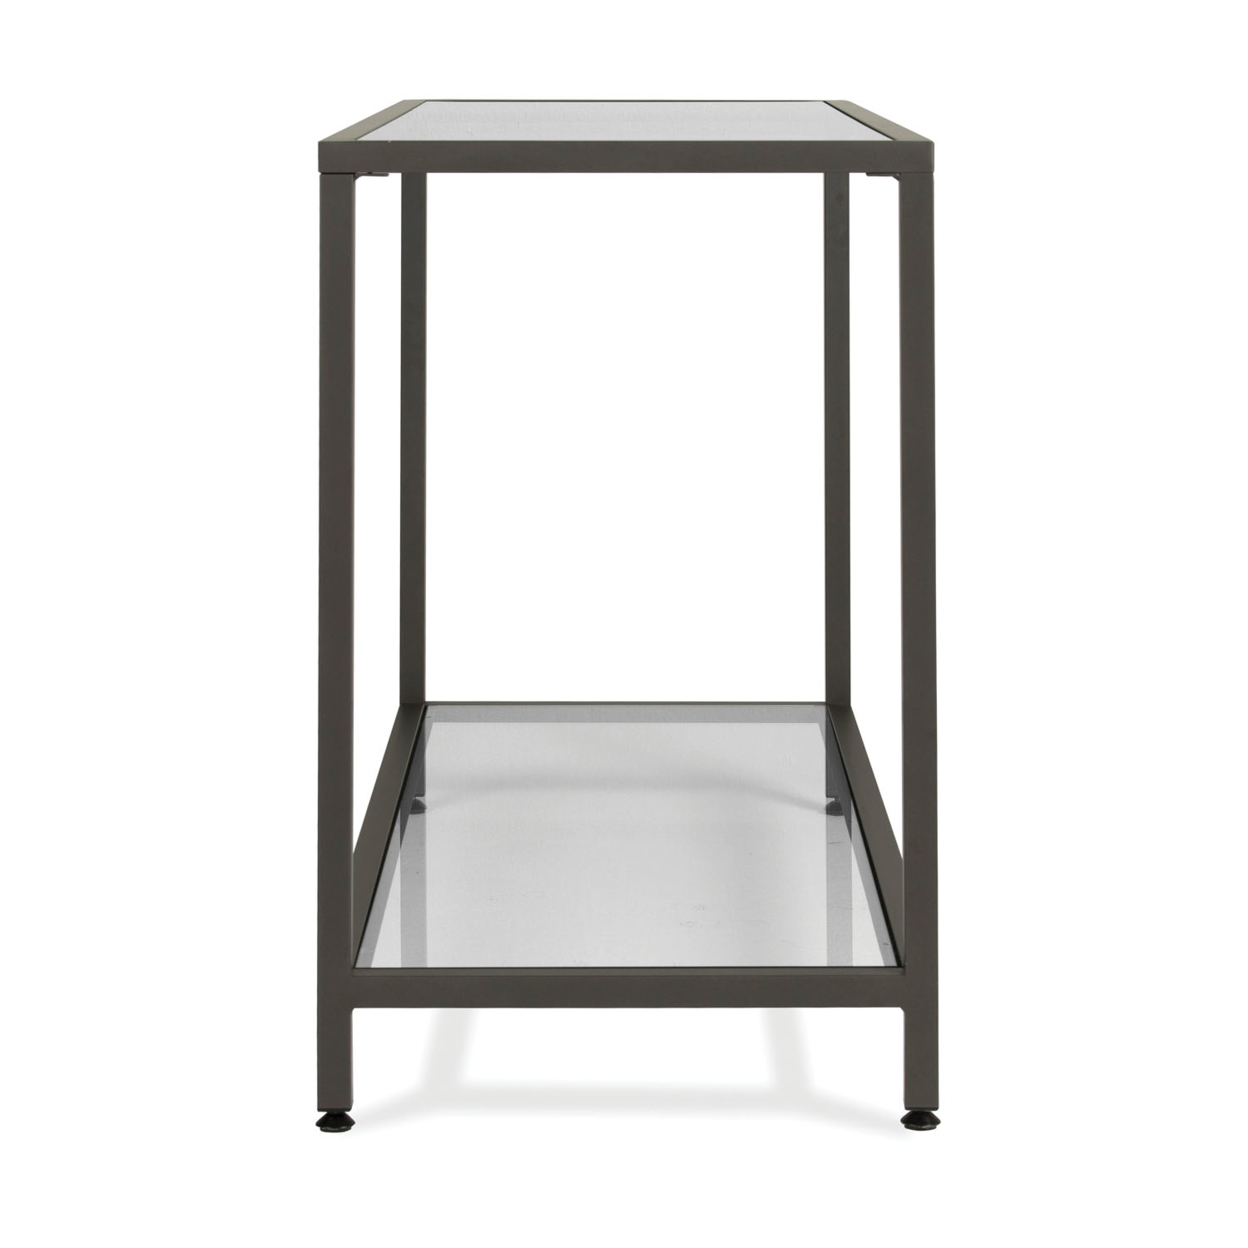 Studio Designs Camber Collection Rectangle Clear Glass Console Table - Pewter (2)